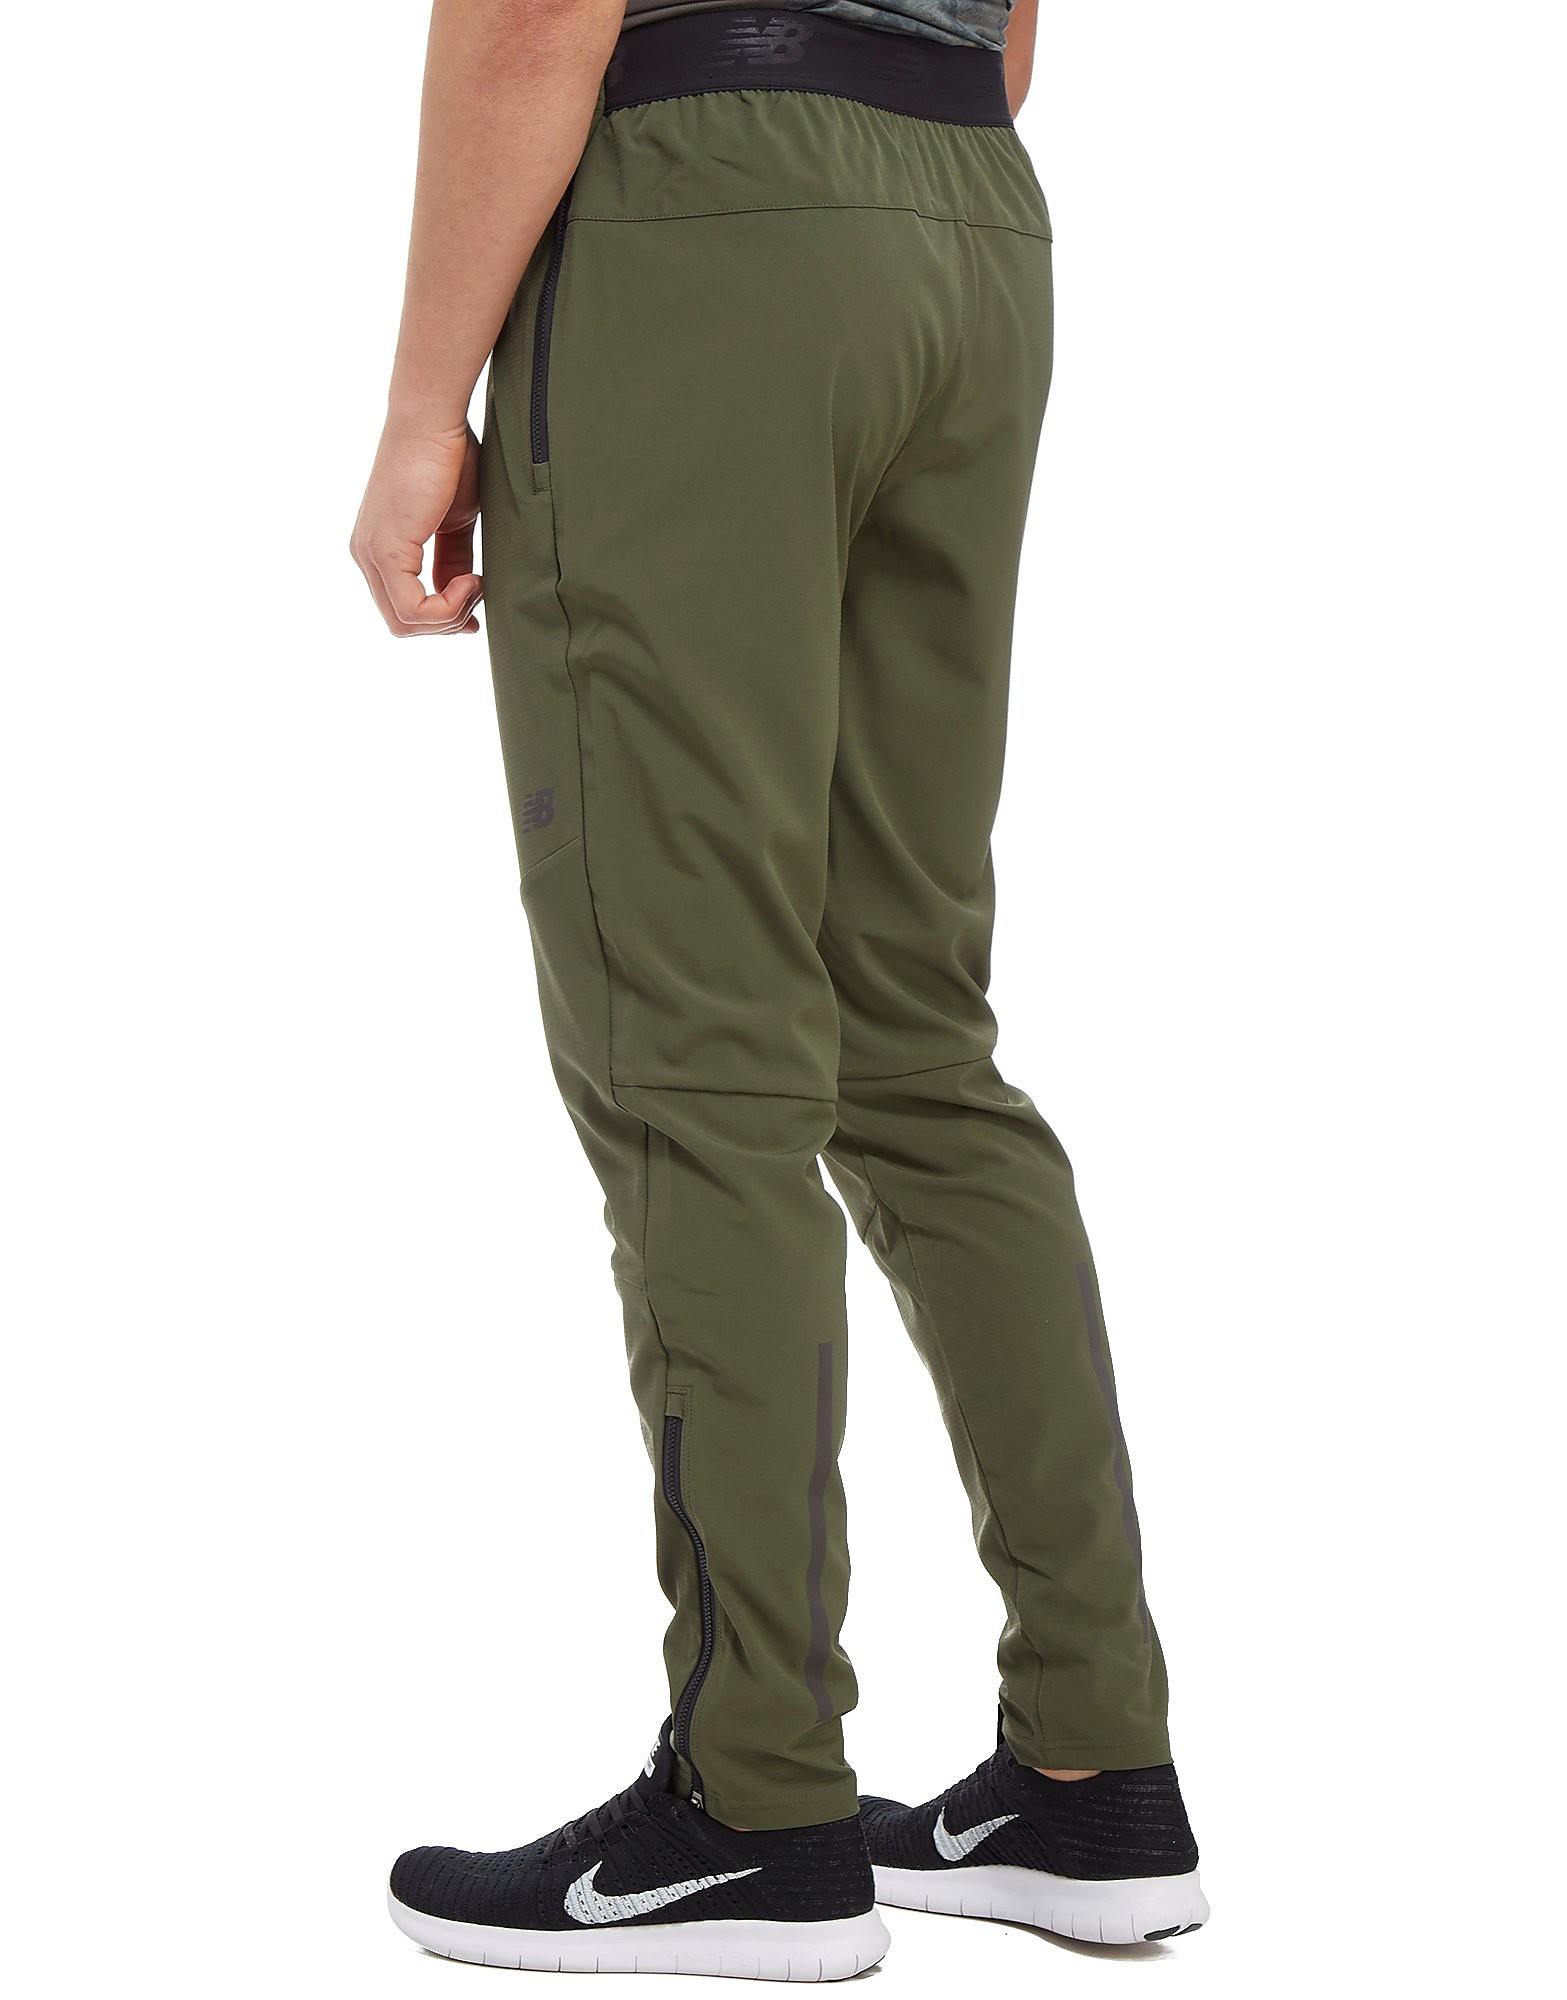 New Balance Max Intensity Pants